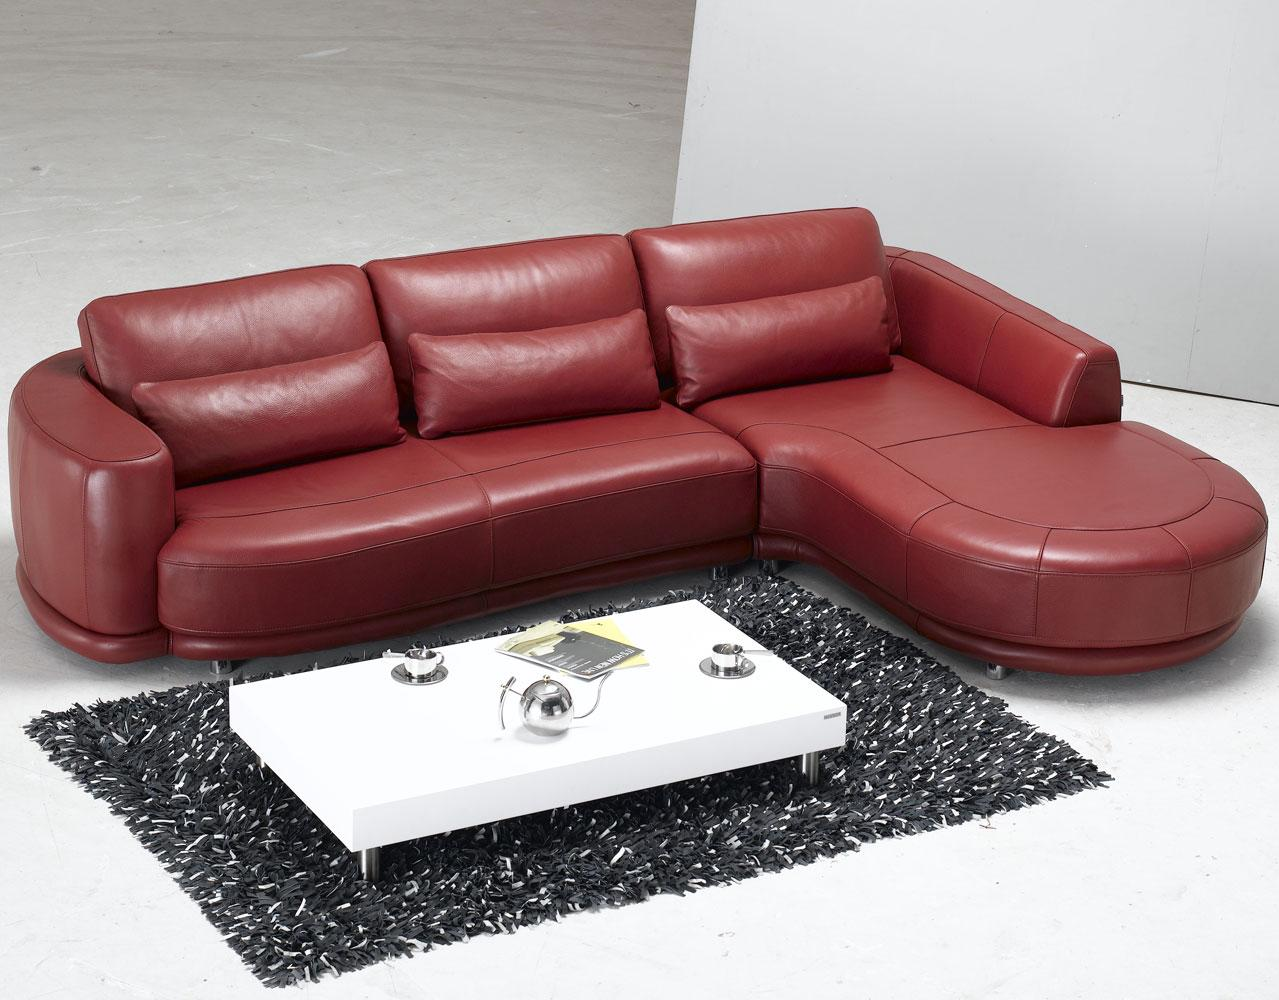 decorating with red leather sofas sofa repair london attractive for interior living room